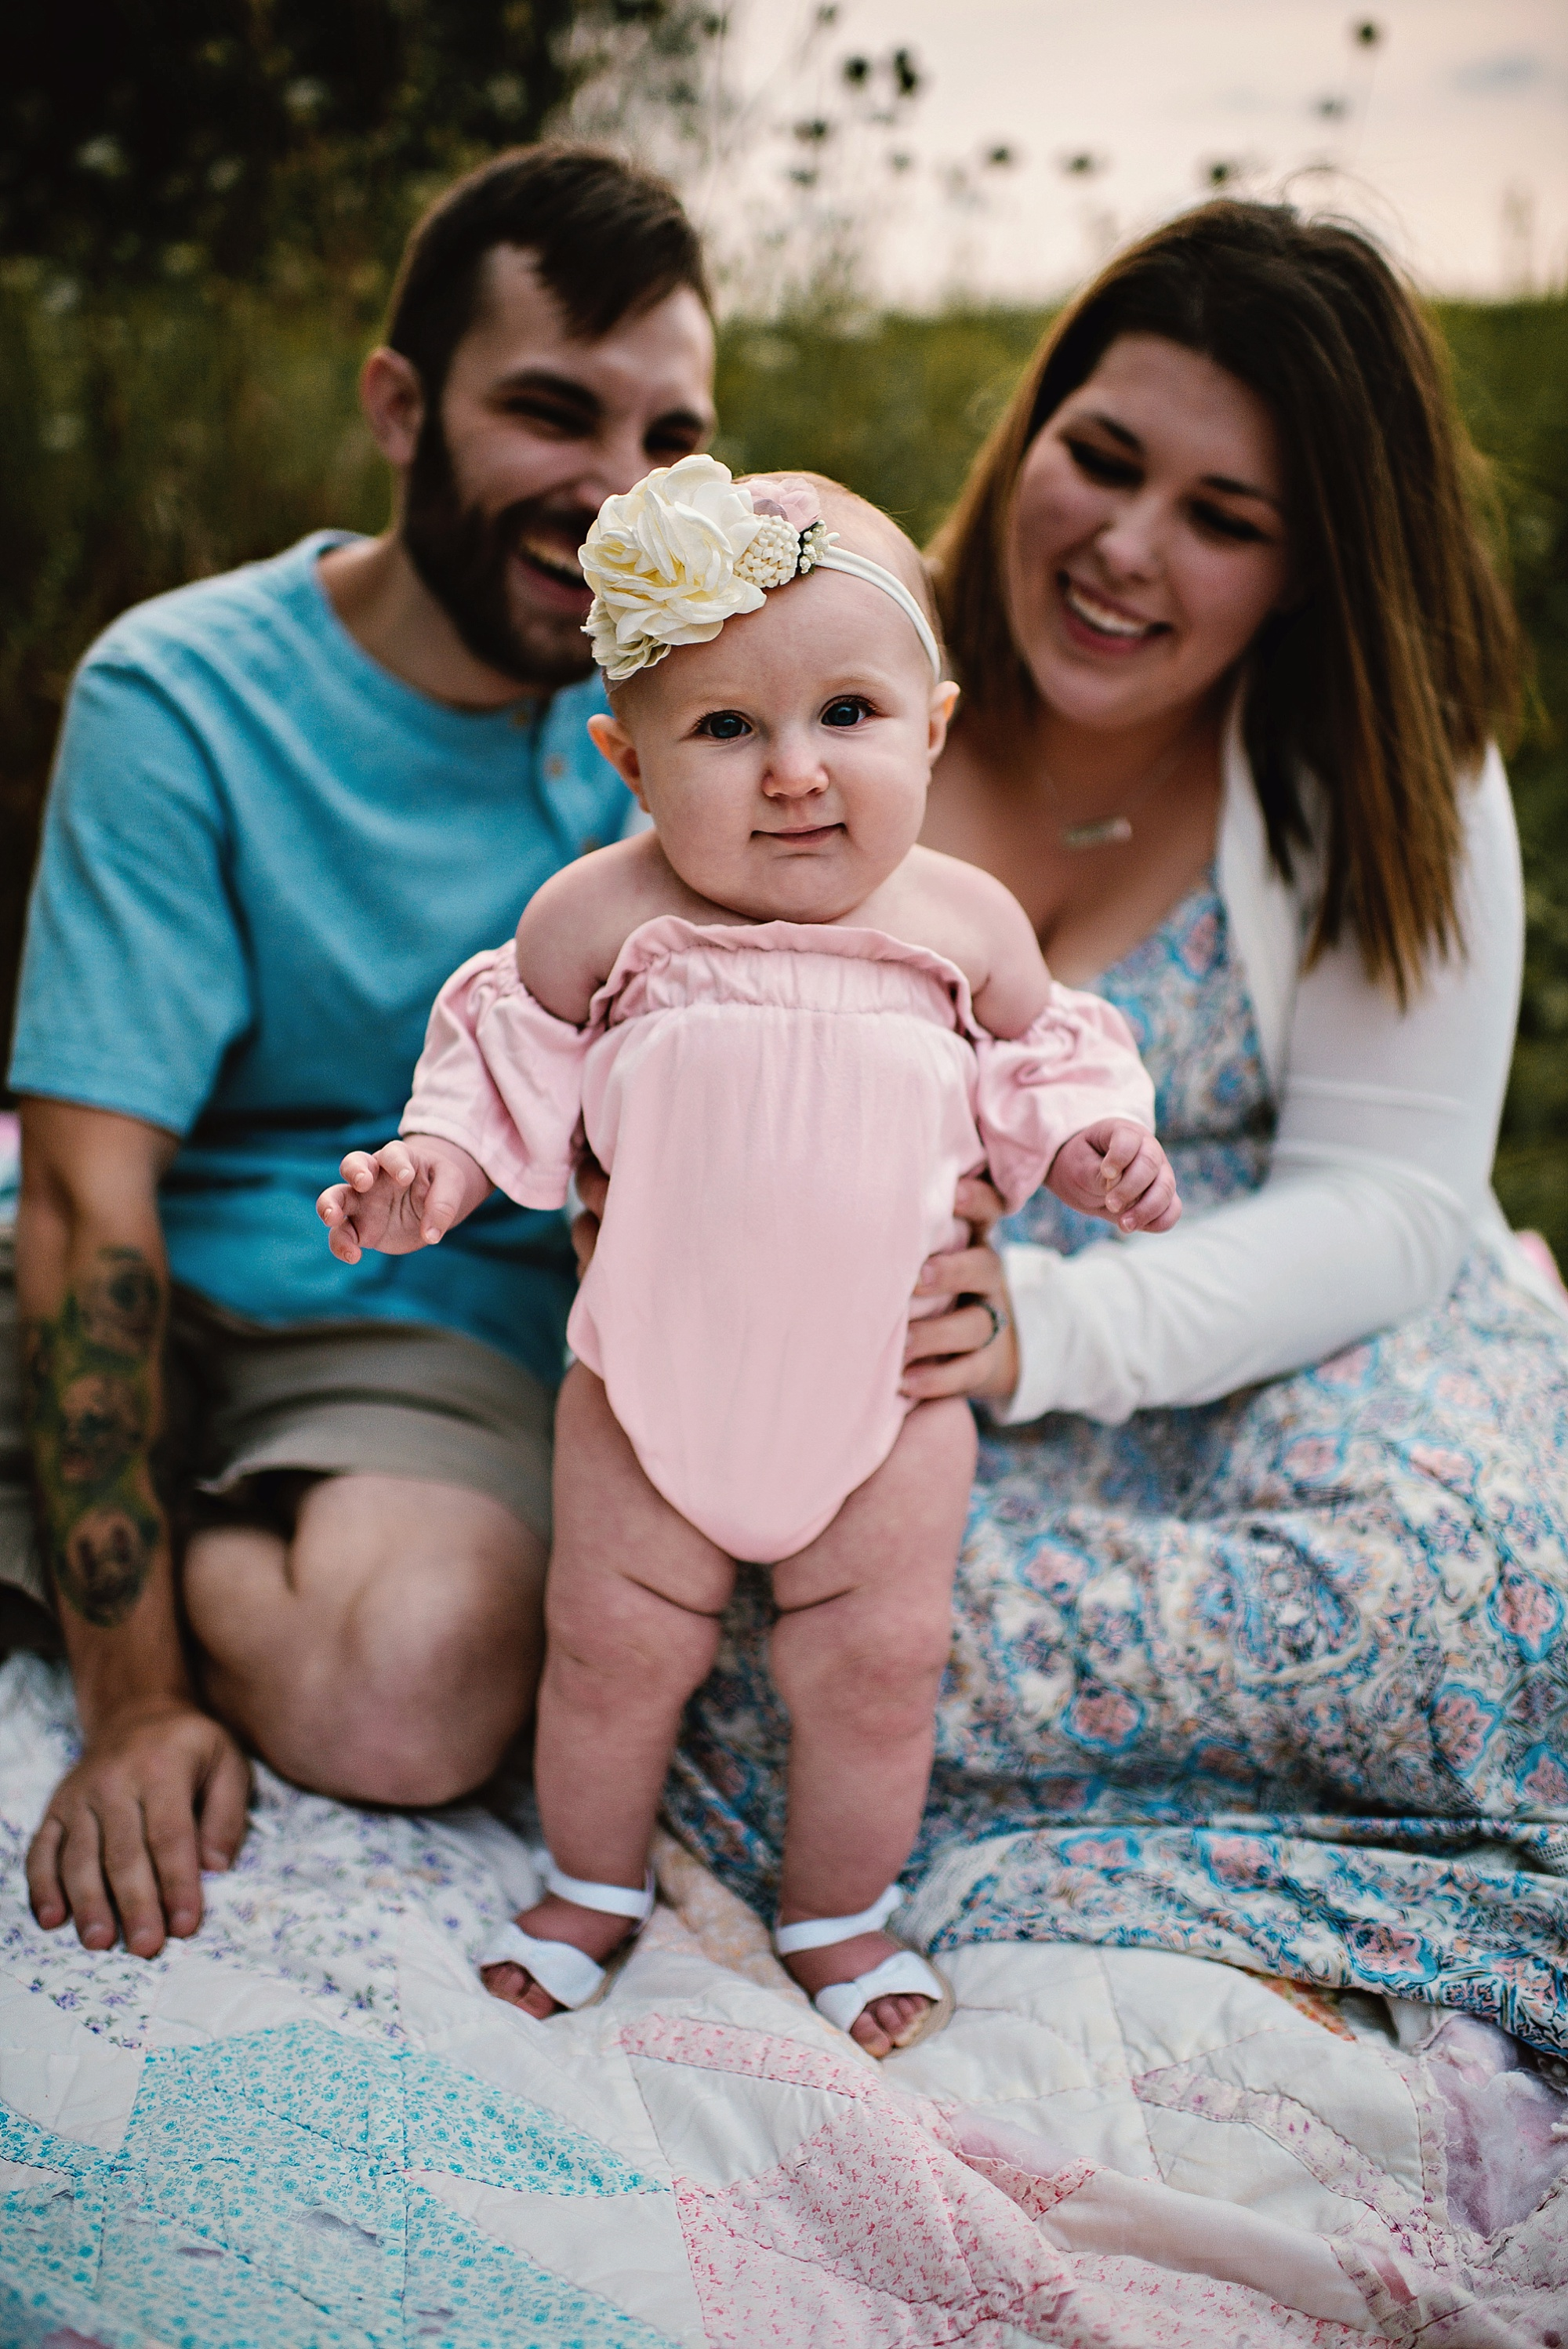 amber-lauren-grayson-photography-springfield-bog-akron-ohio-family-photographer_0001.jpg